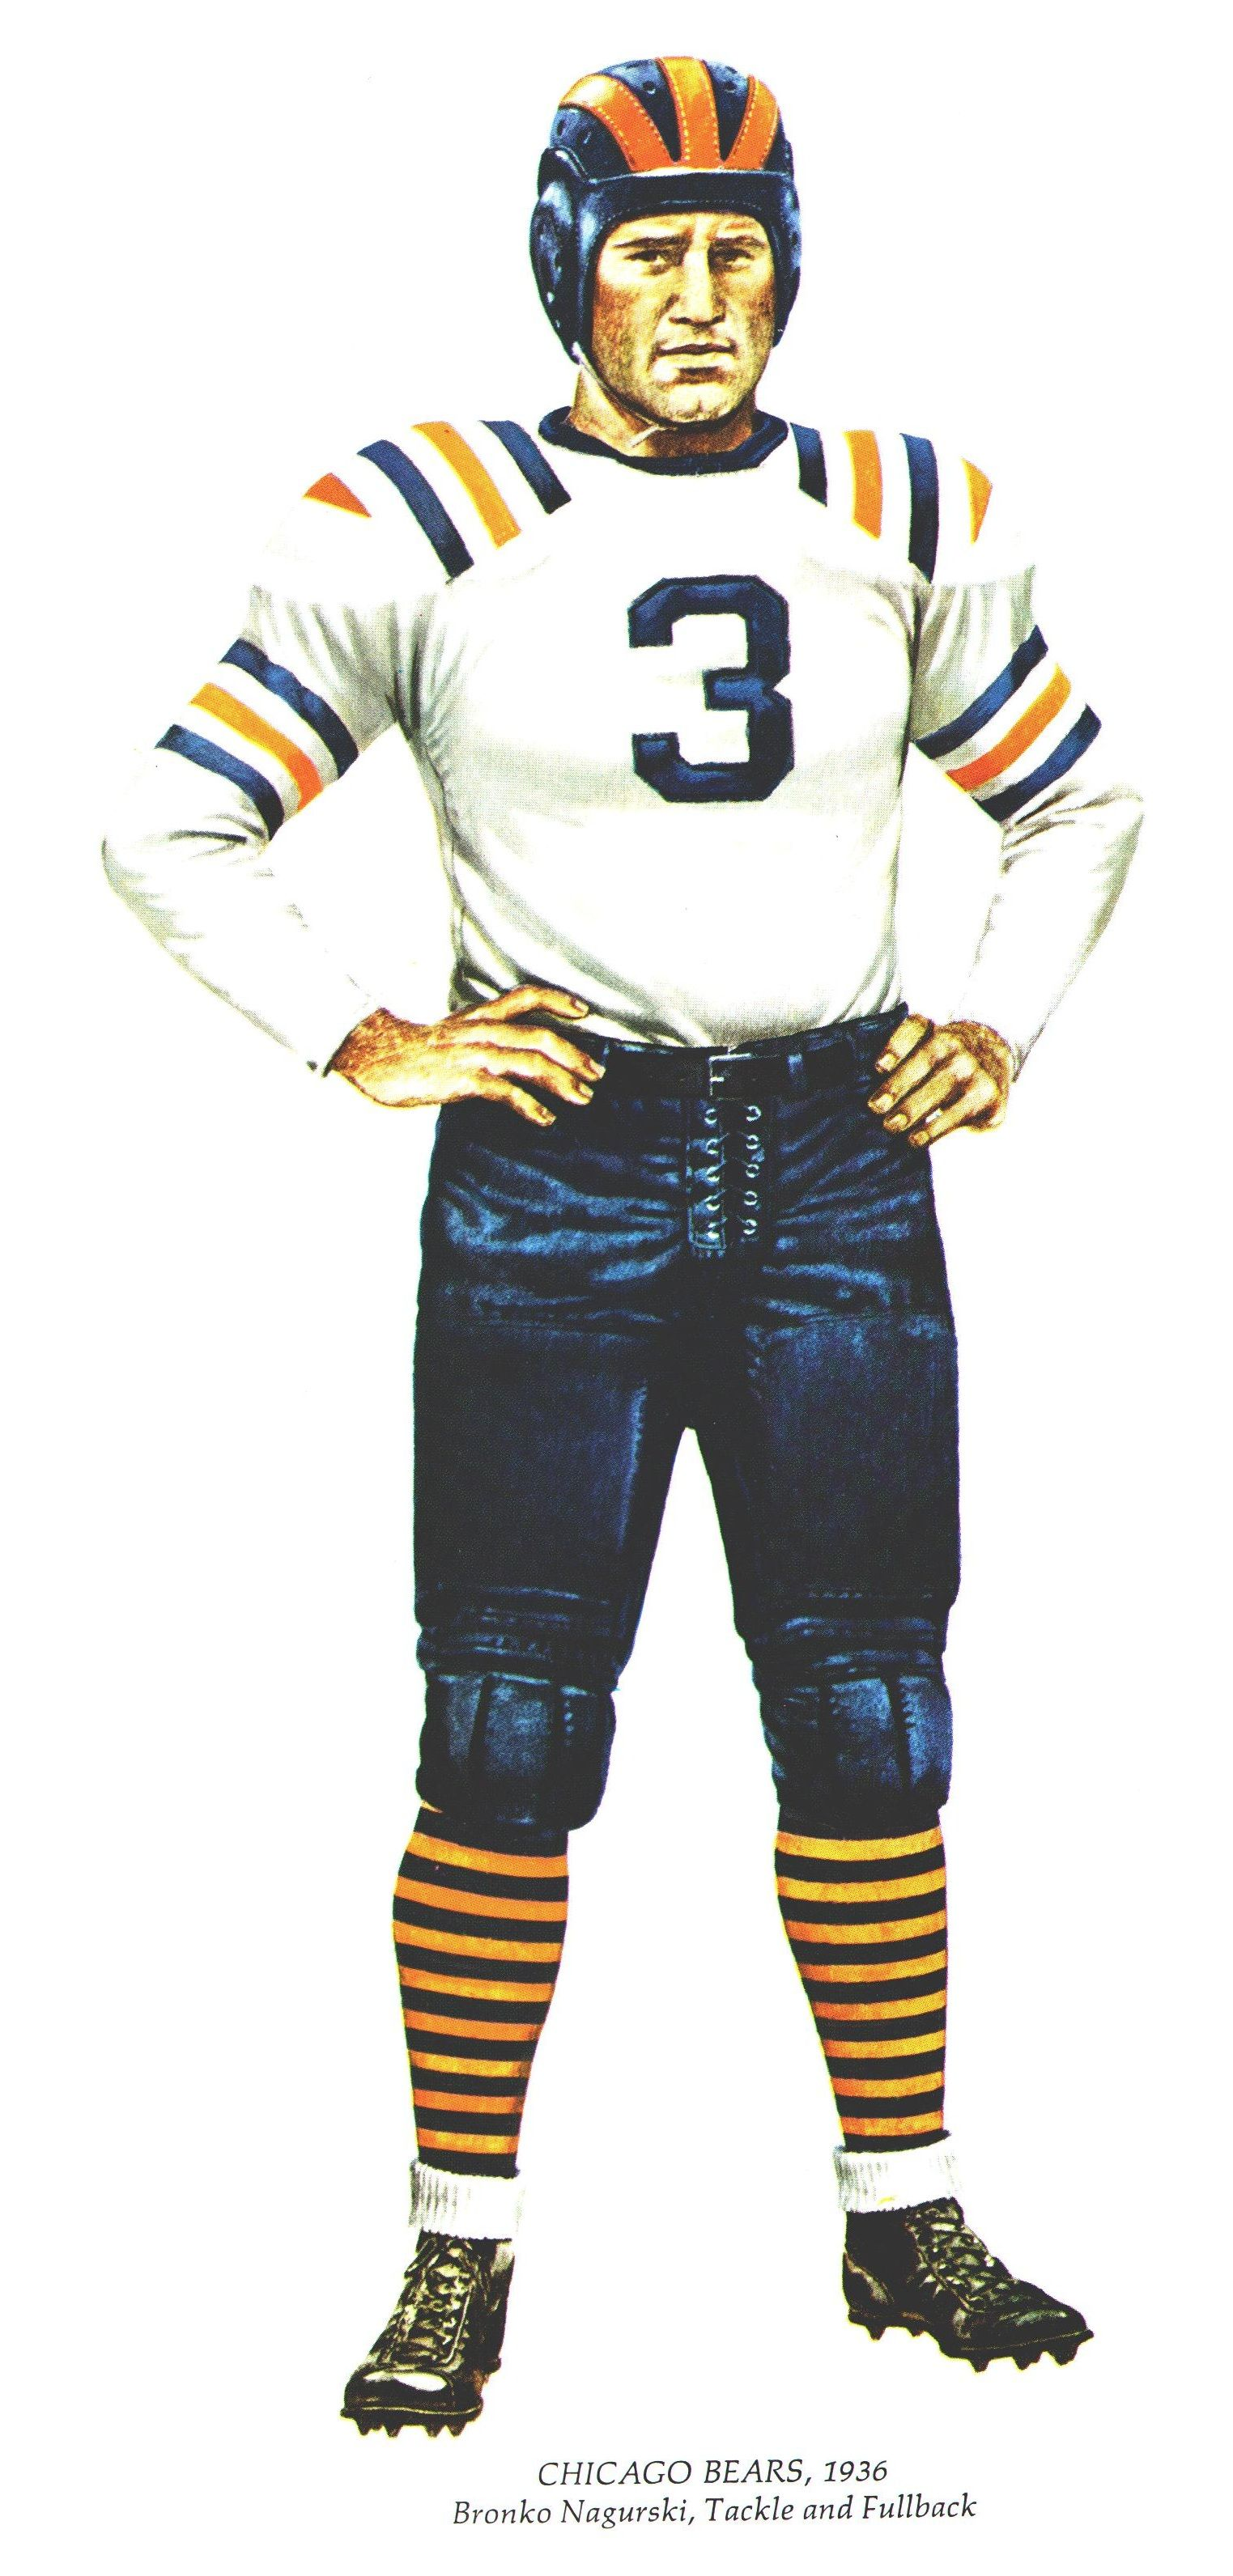 488b98fc62d This uniform is beautiful and easily my favorite throwback. The alternating  blue and orange stripes are the origins of the Bears current away uniform  and I ...